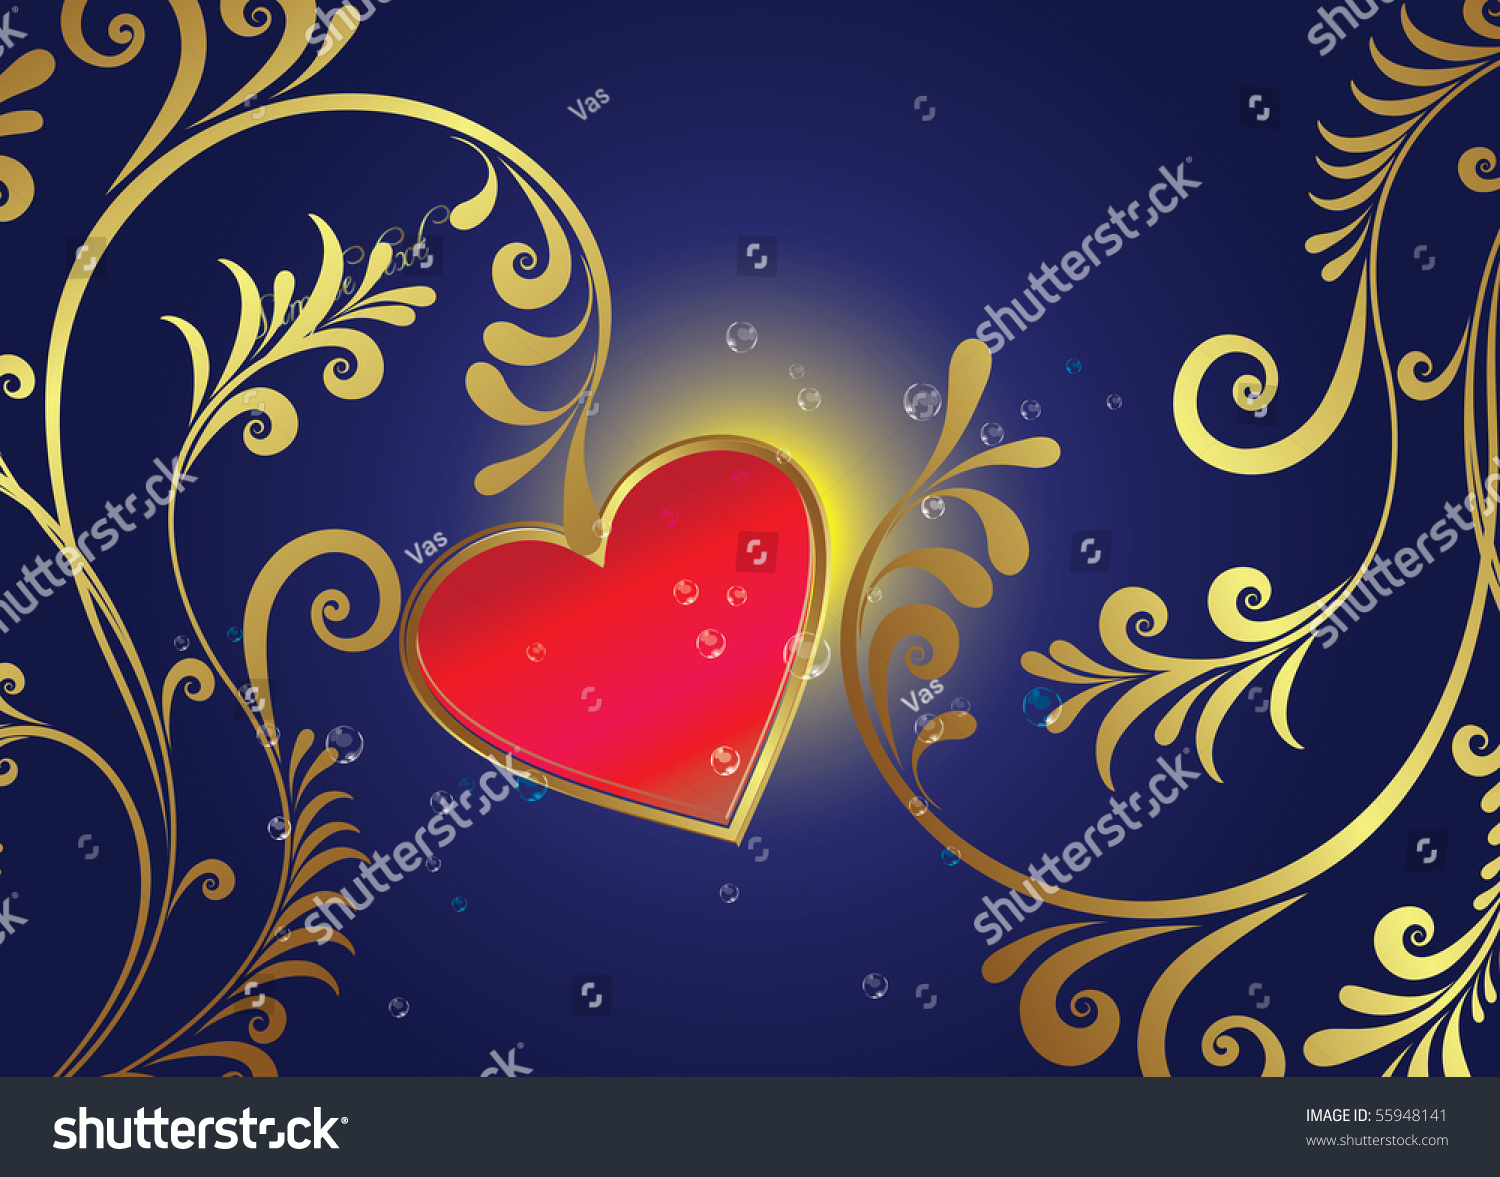 Red Heart On Blue Background Stock Vector Illustration